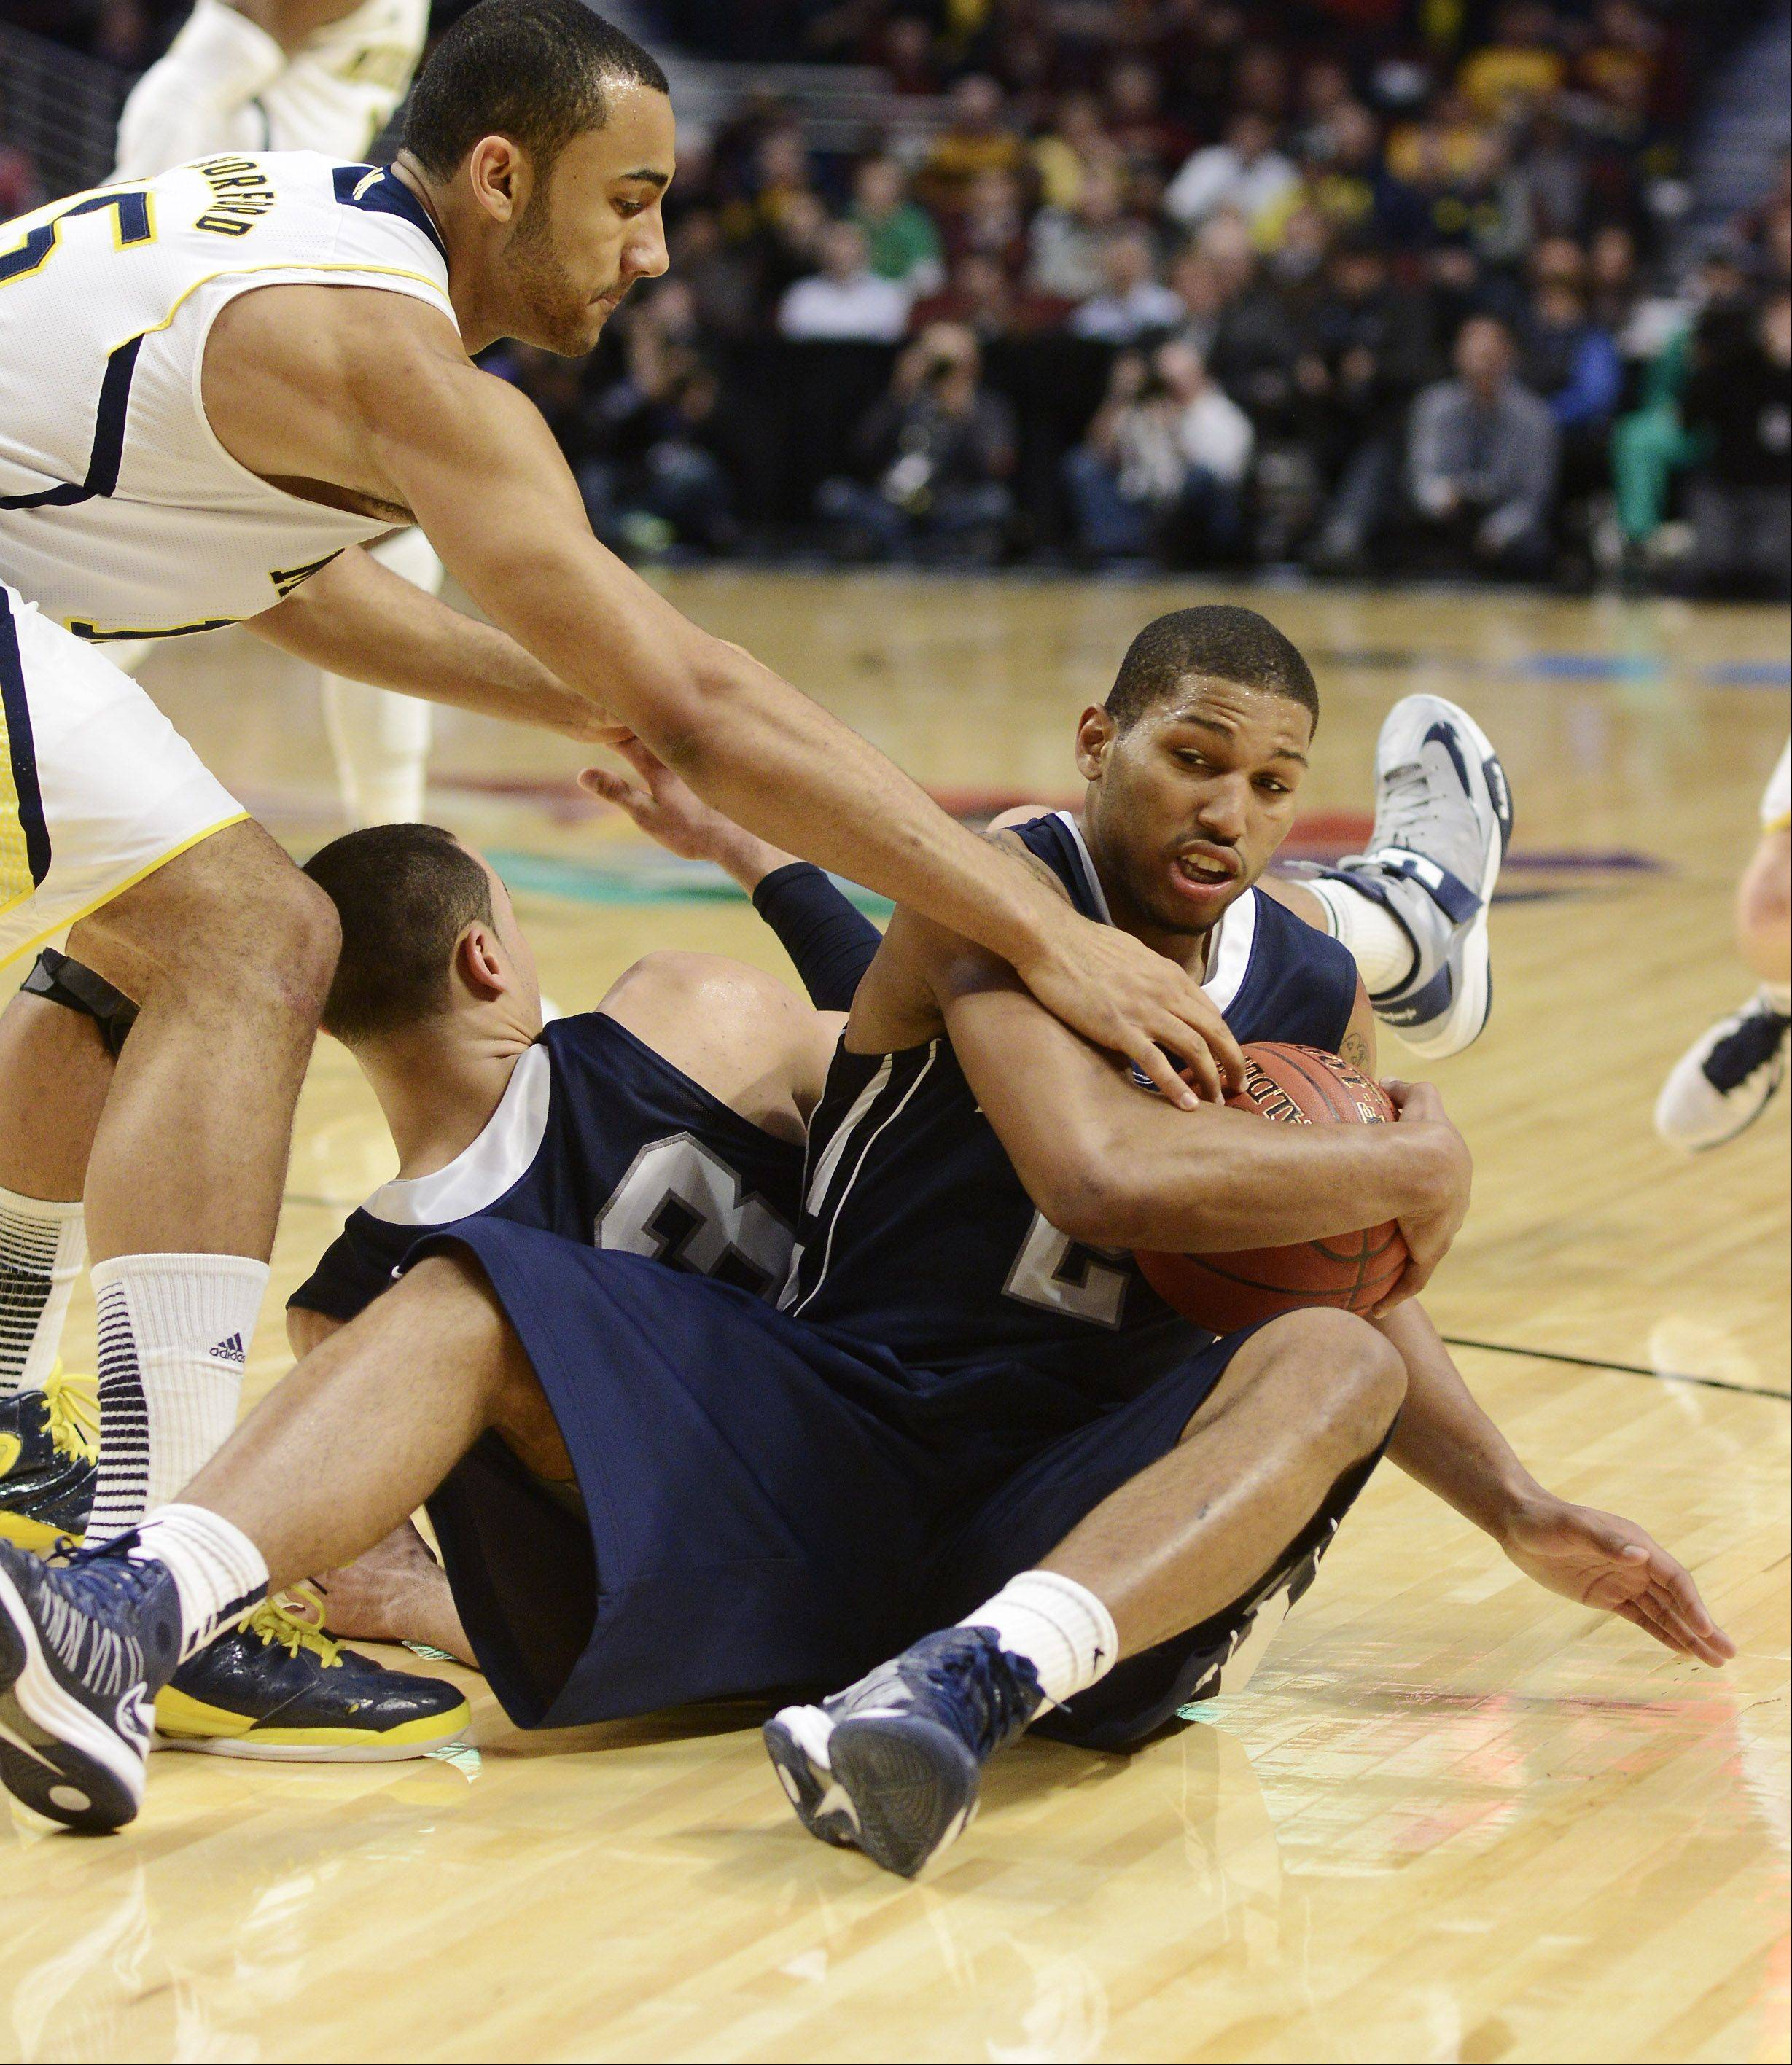 Penn State's D.J. Newbill tries to keep the ball from Michigan's Jon Horford .